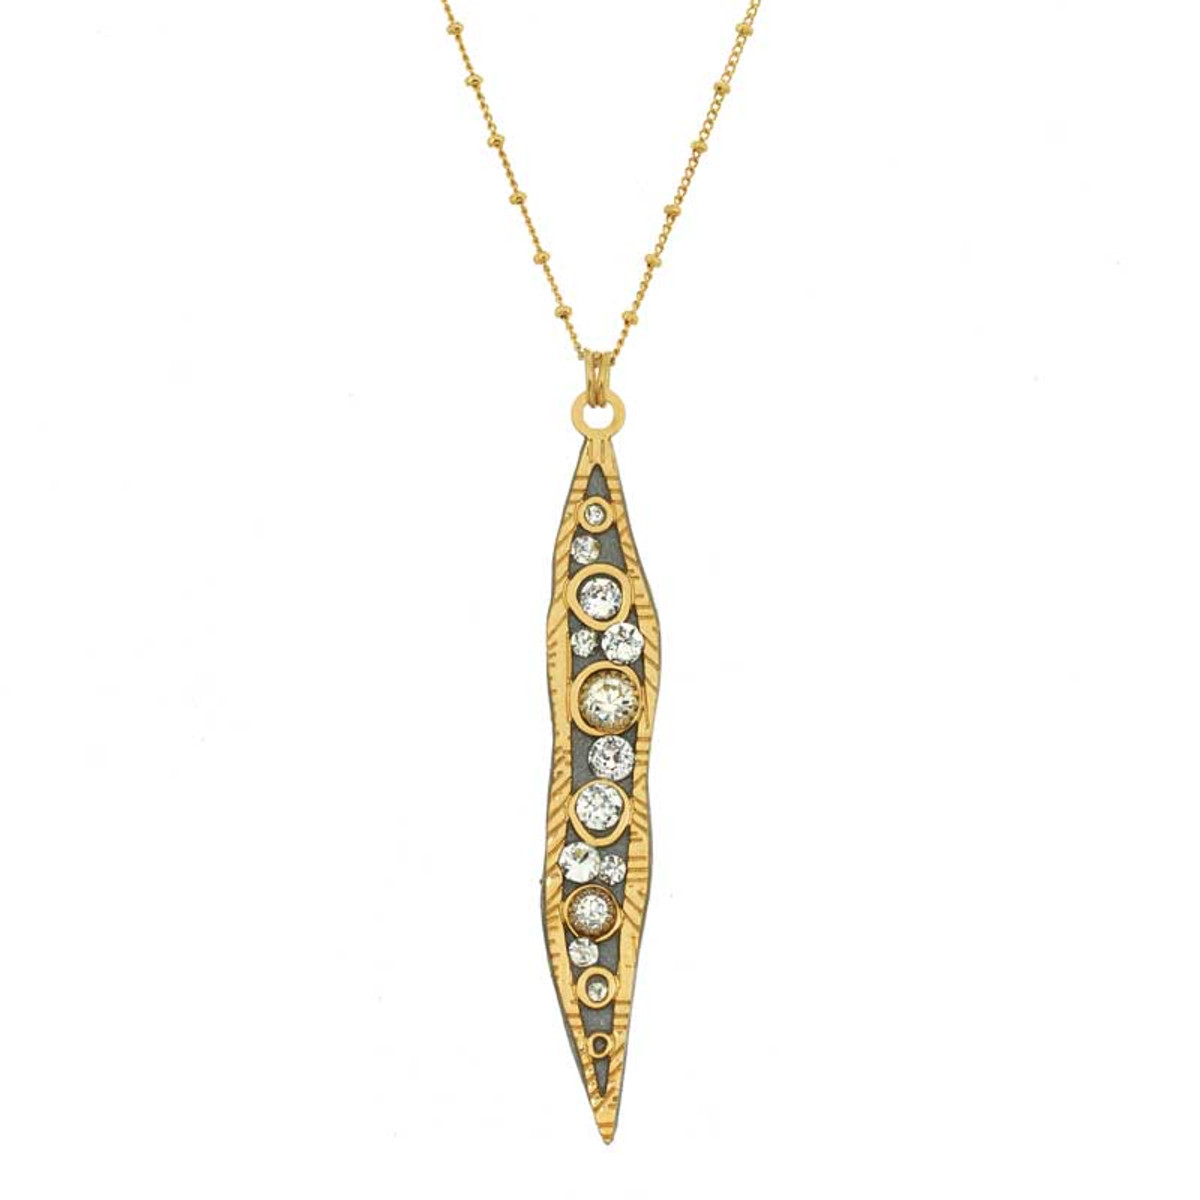 Gold Icicle style necklaces by Michal Golan Jewelry